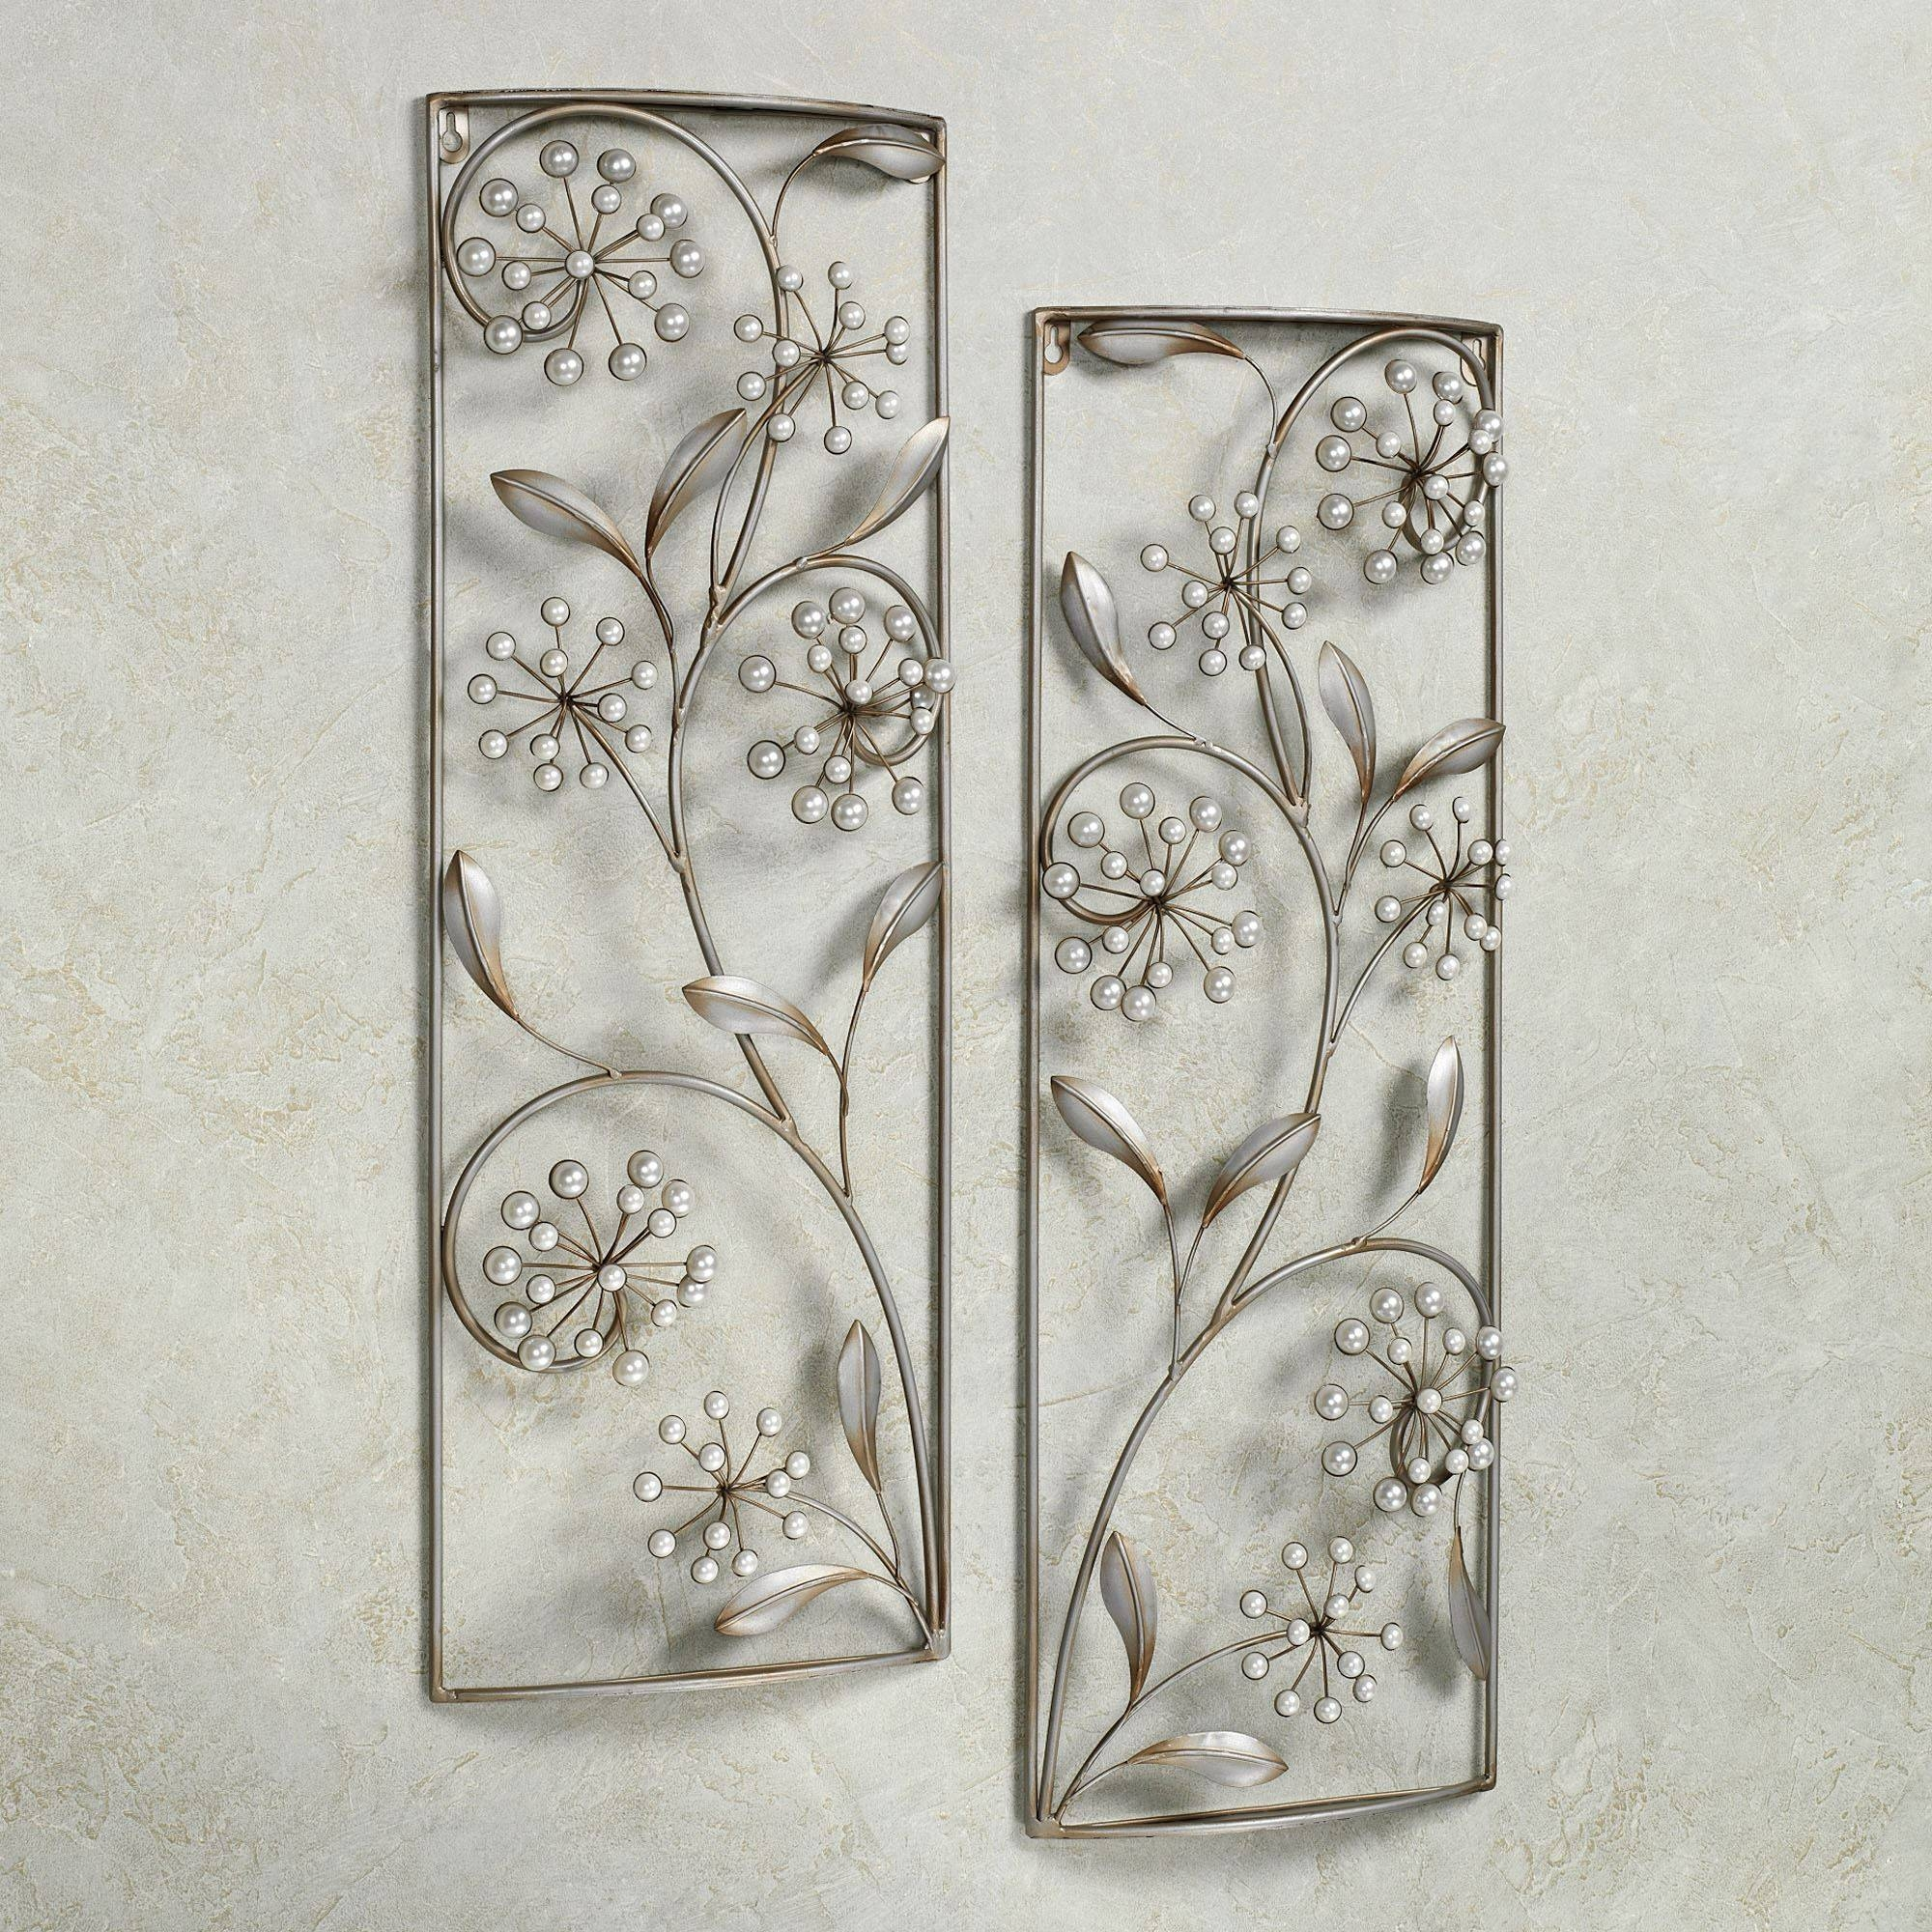 Pearlette Metal Wall Art Panel Set with regard to Most Current Metal Wall Art Panels